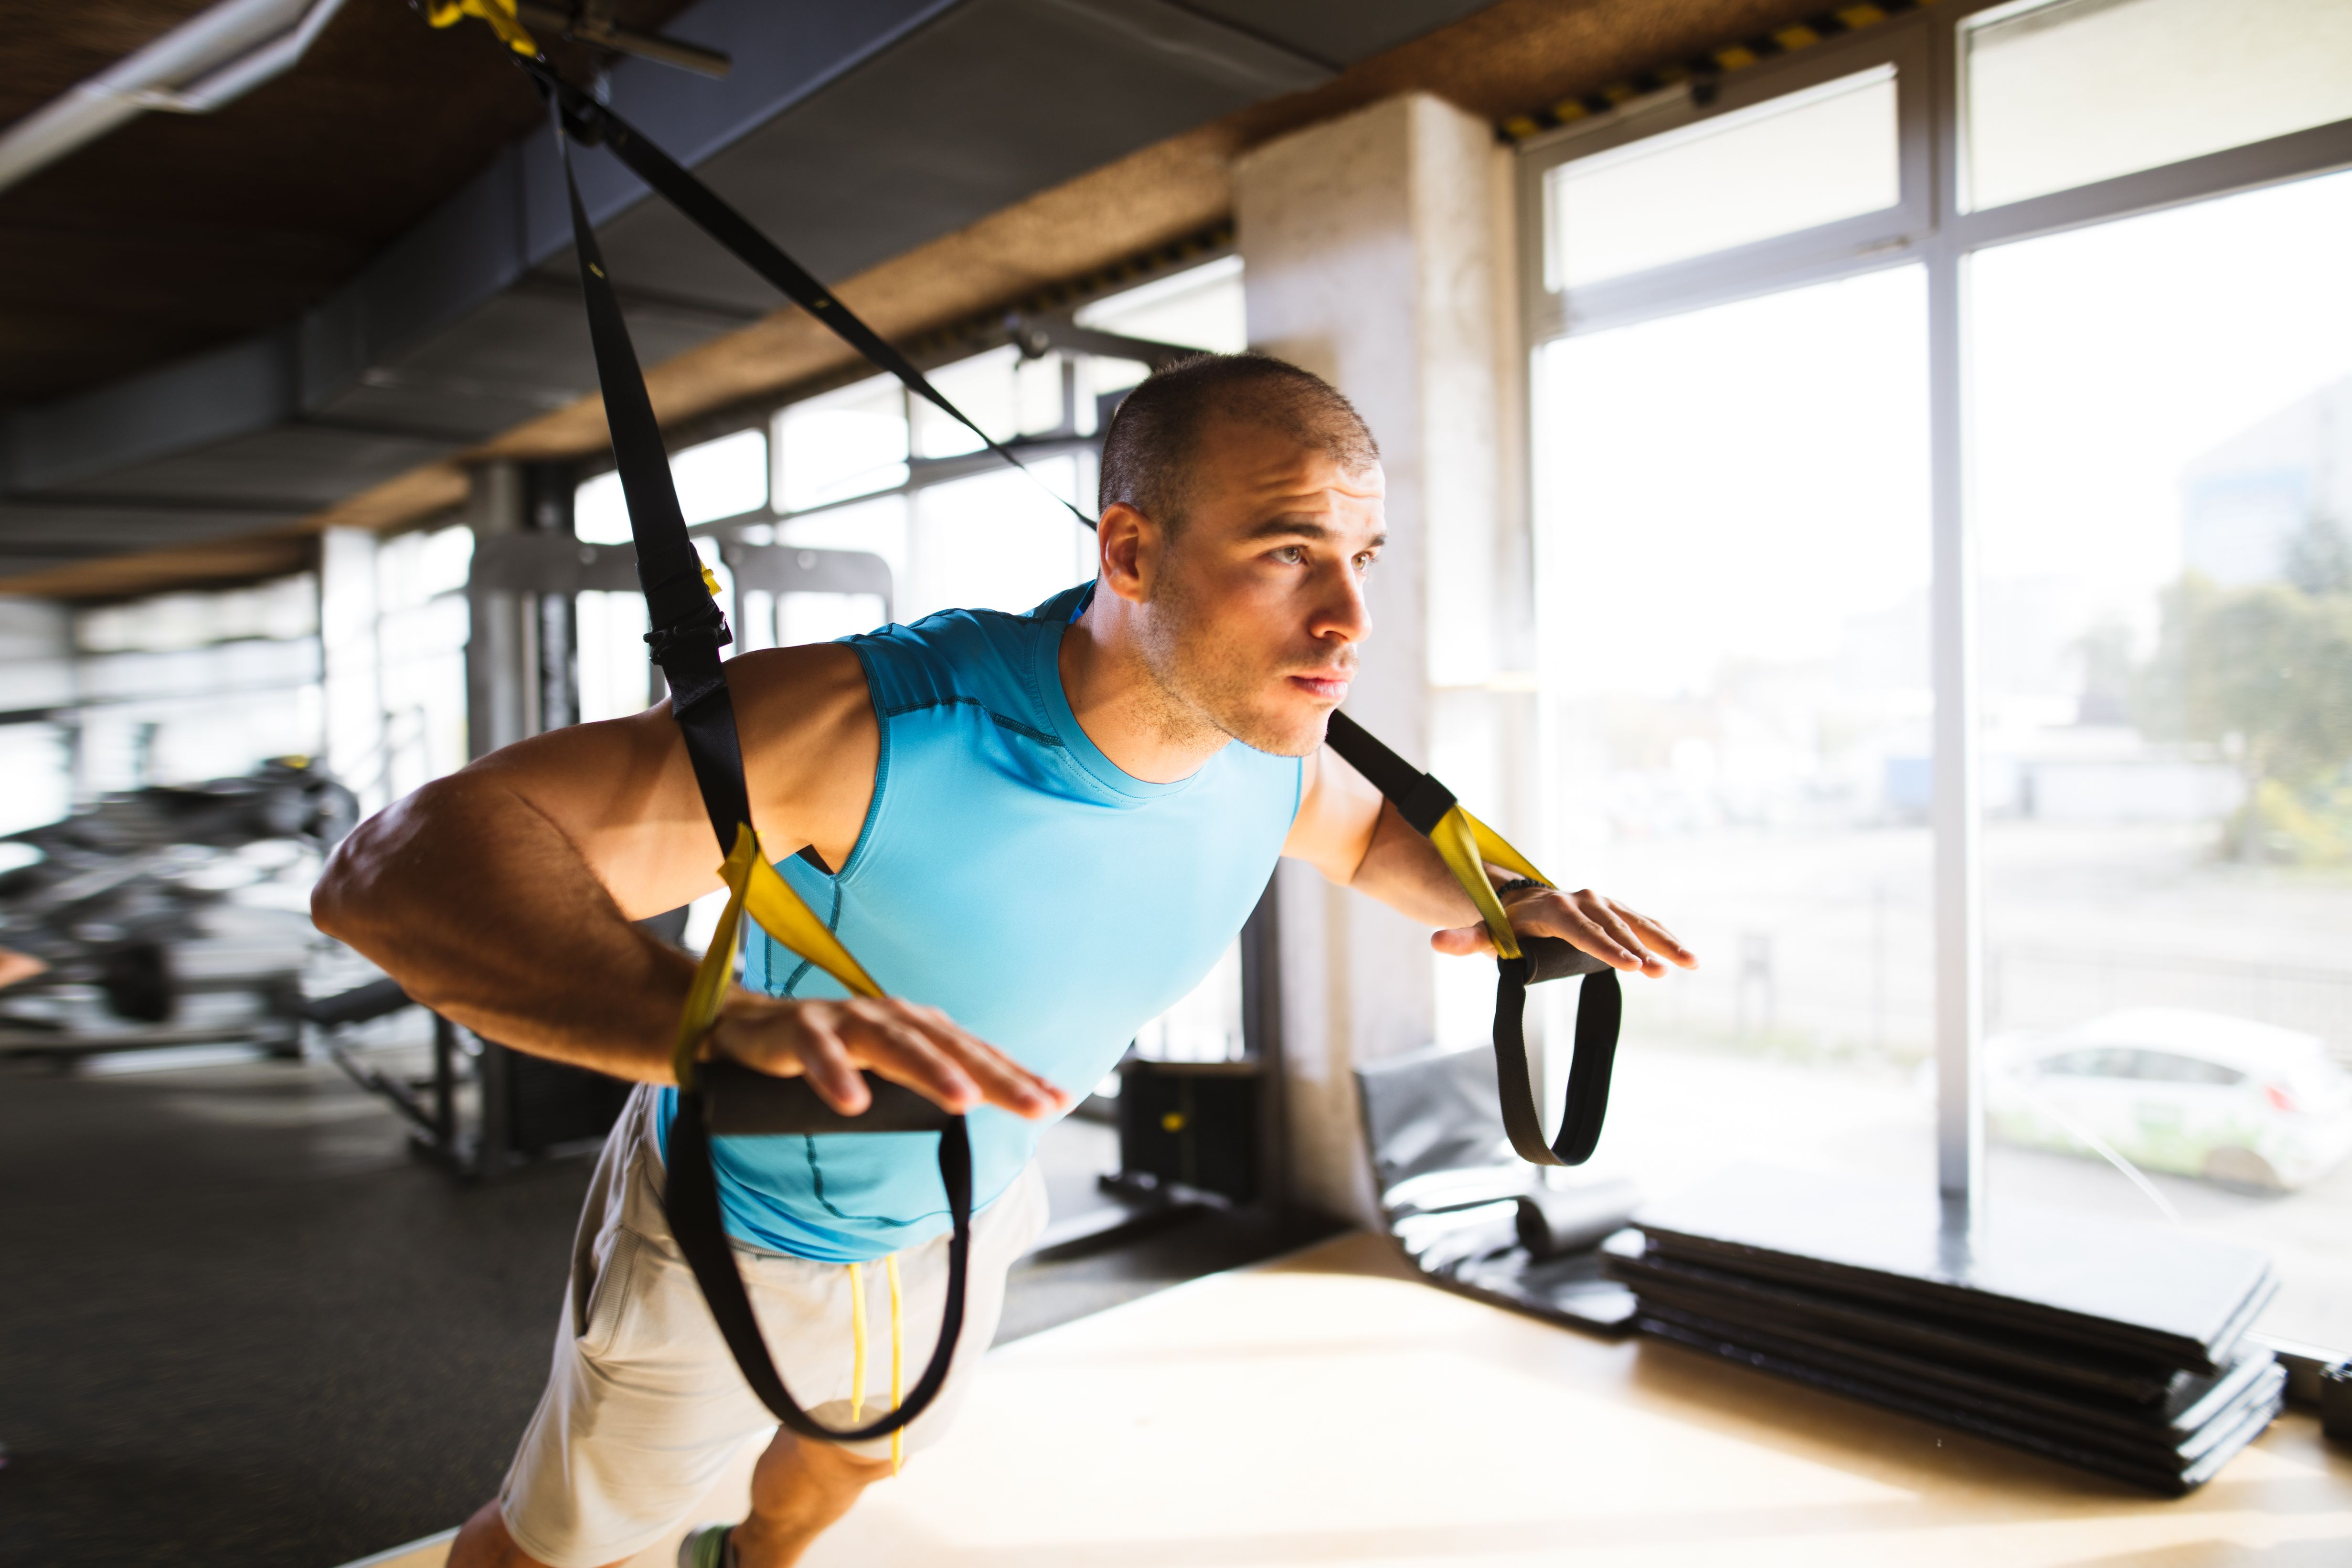 super popular 3fdbc 645b9 This Total-Body TRX Workout Will Put More Power in Your Pedals